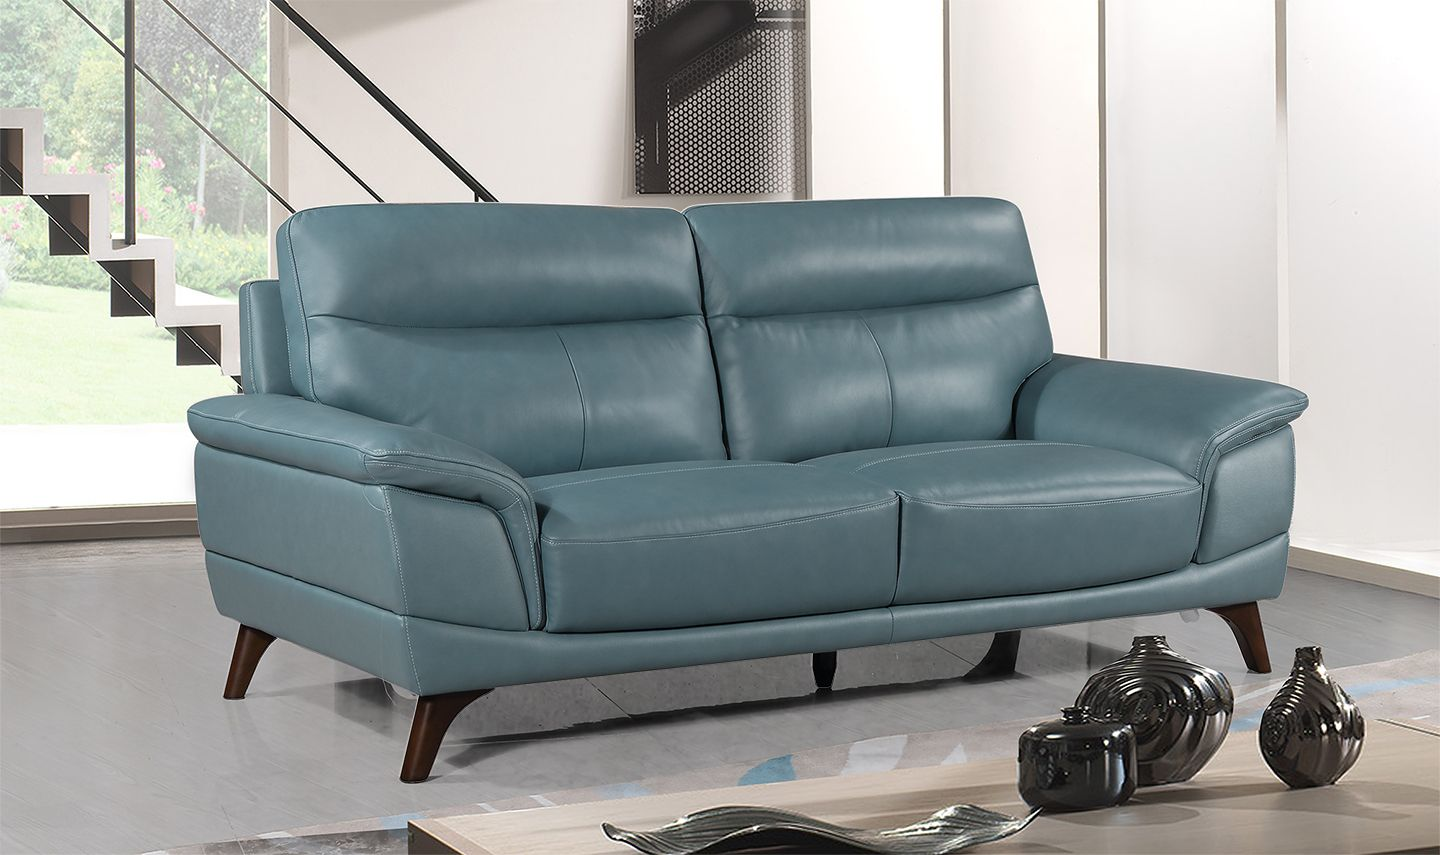 Salerno Petrol Blue Leather 3 Seater Sofa 18vd289